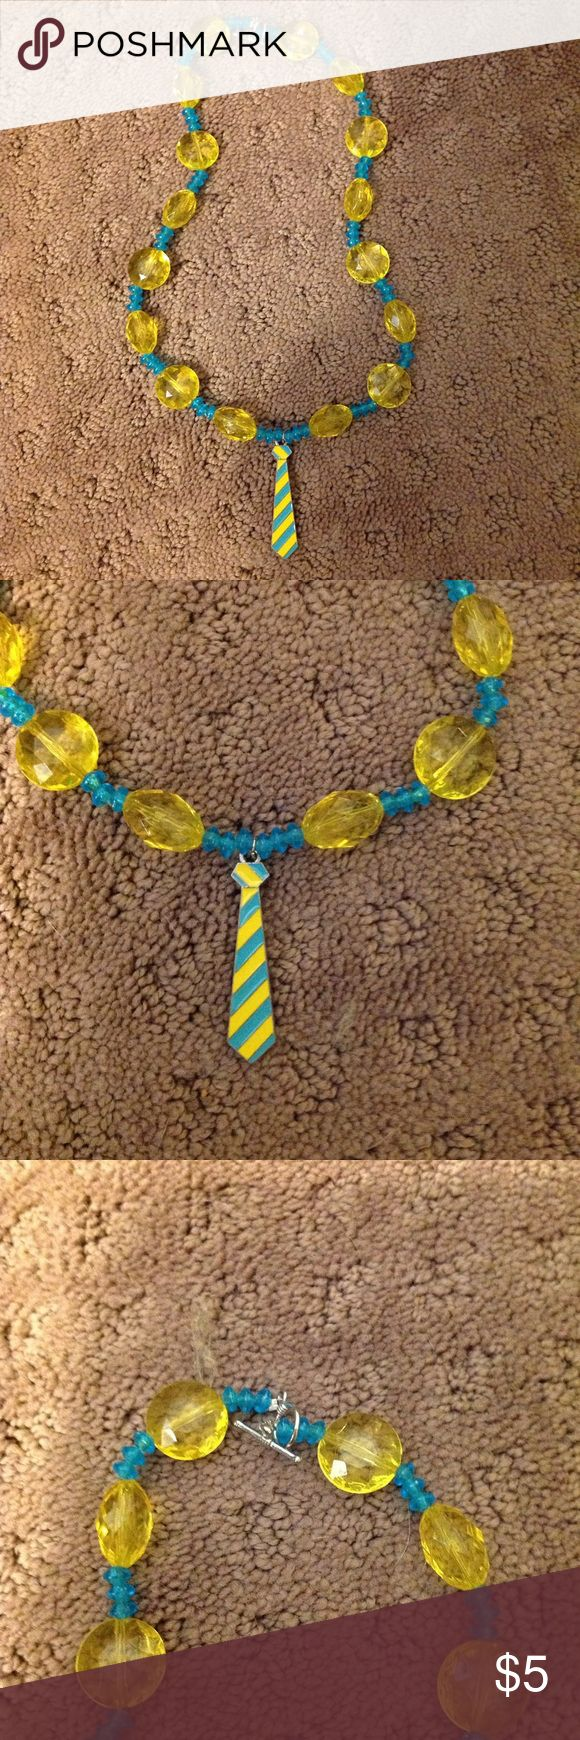 Novelty Tie Beaded Necklace Novelty blue and yellow beaded necklace with tie charm. Etsy Jewelry Necklaces